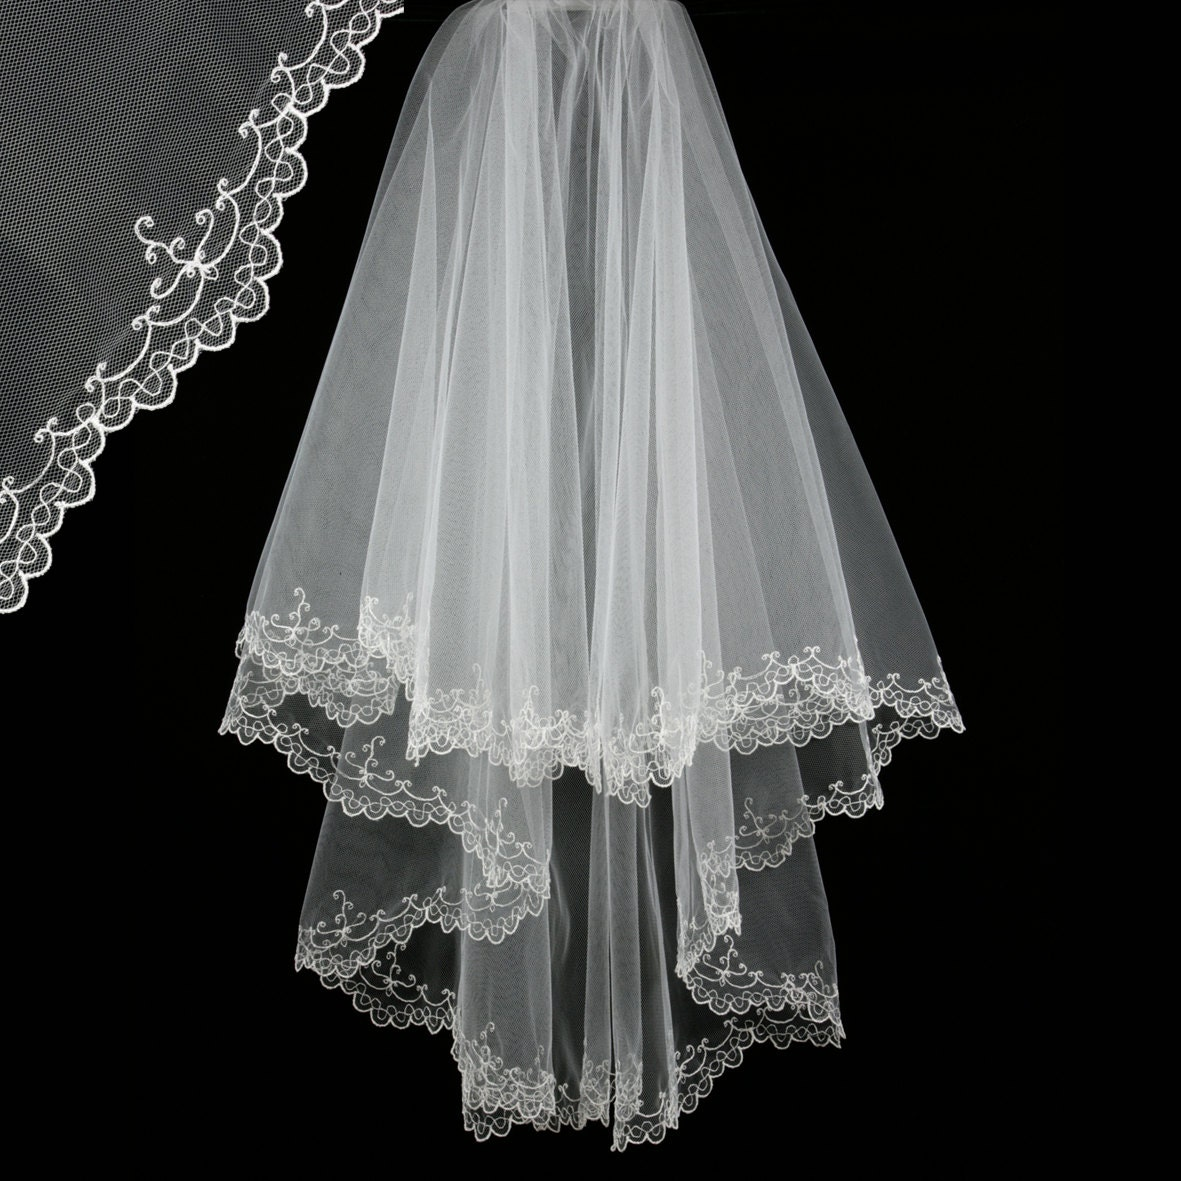 Bridal Veil With Embroidery Maya Wedding Veil-Bridal